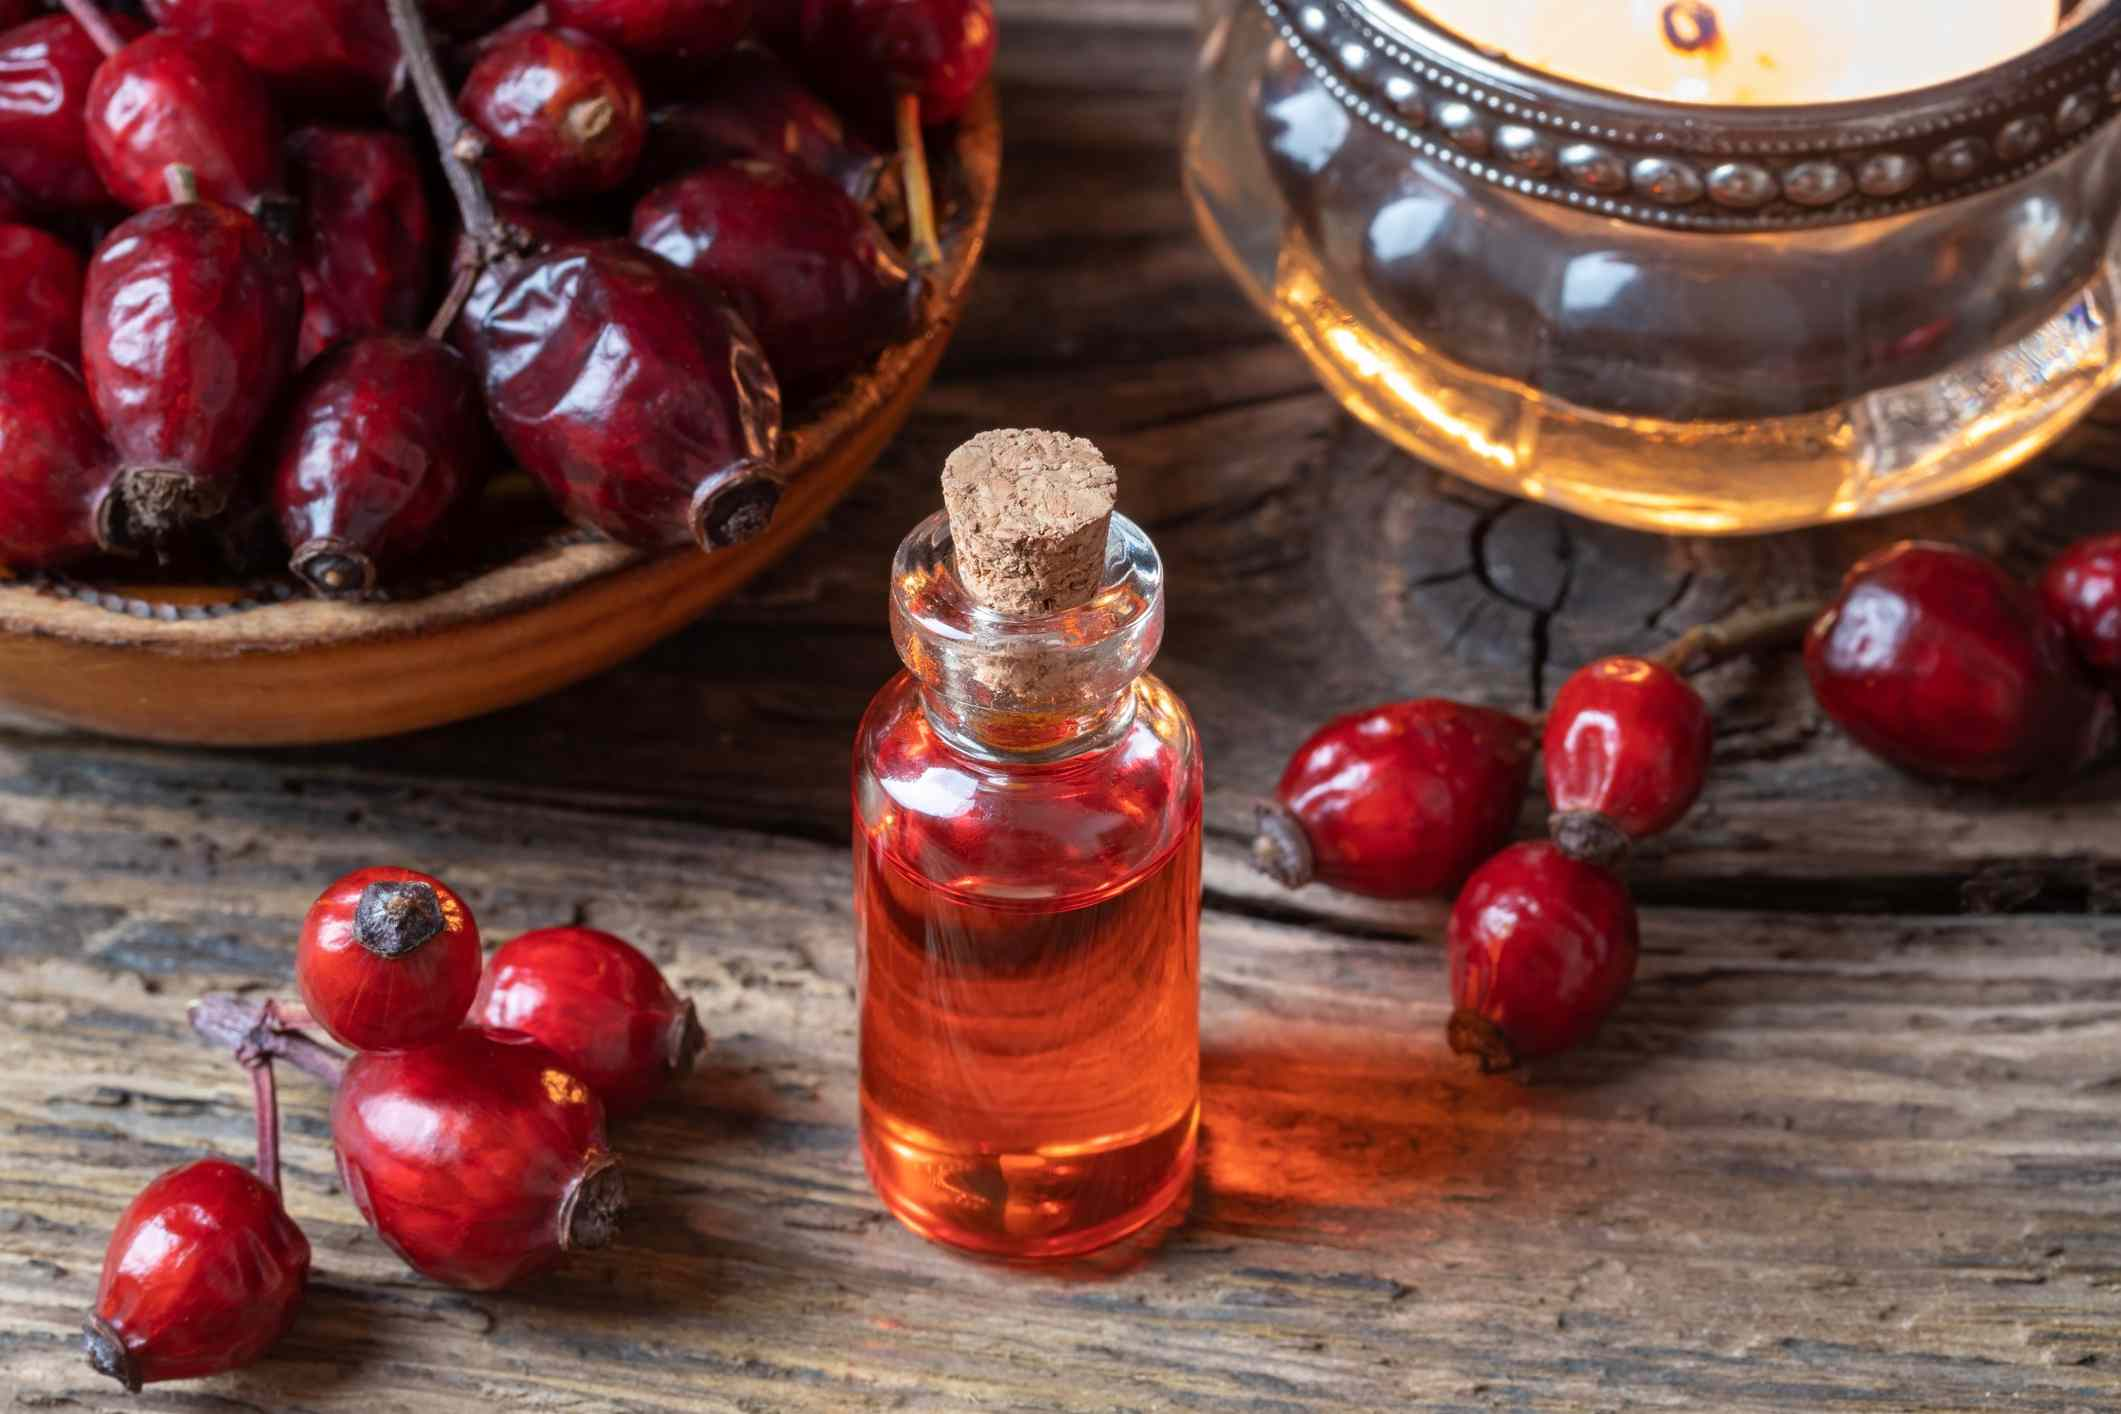 A bottle of rose hip seed oil with dried rose hips on a table